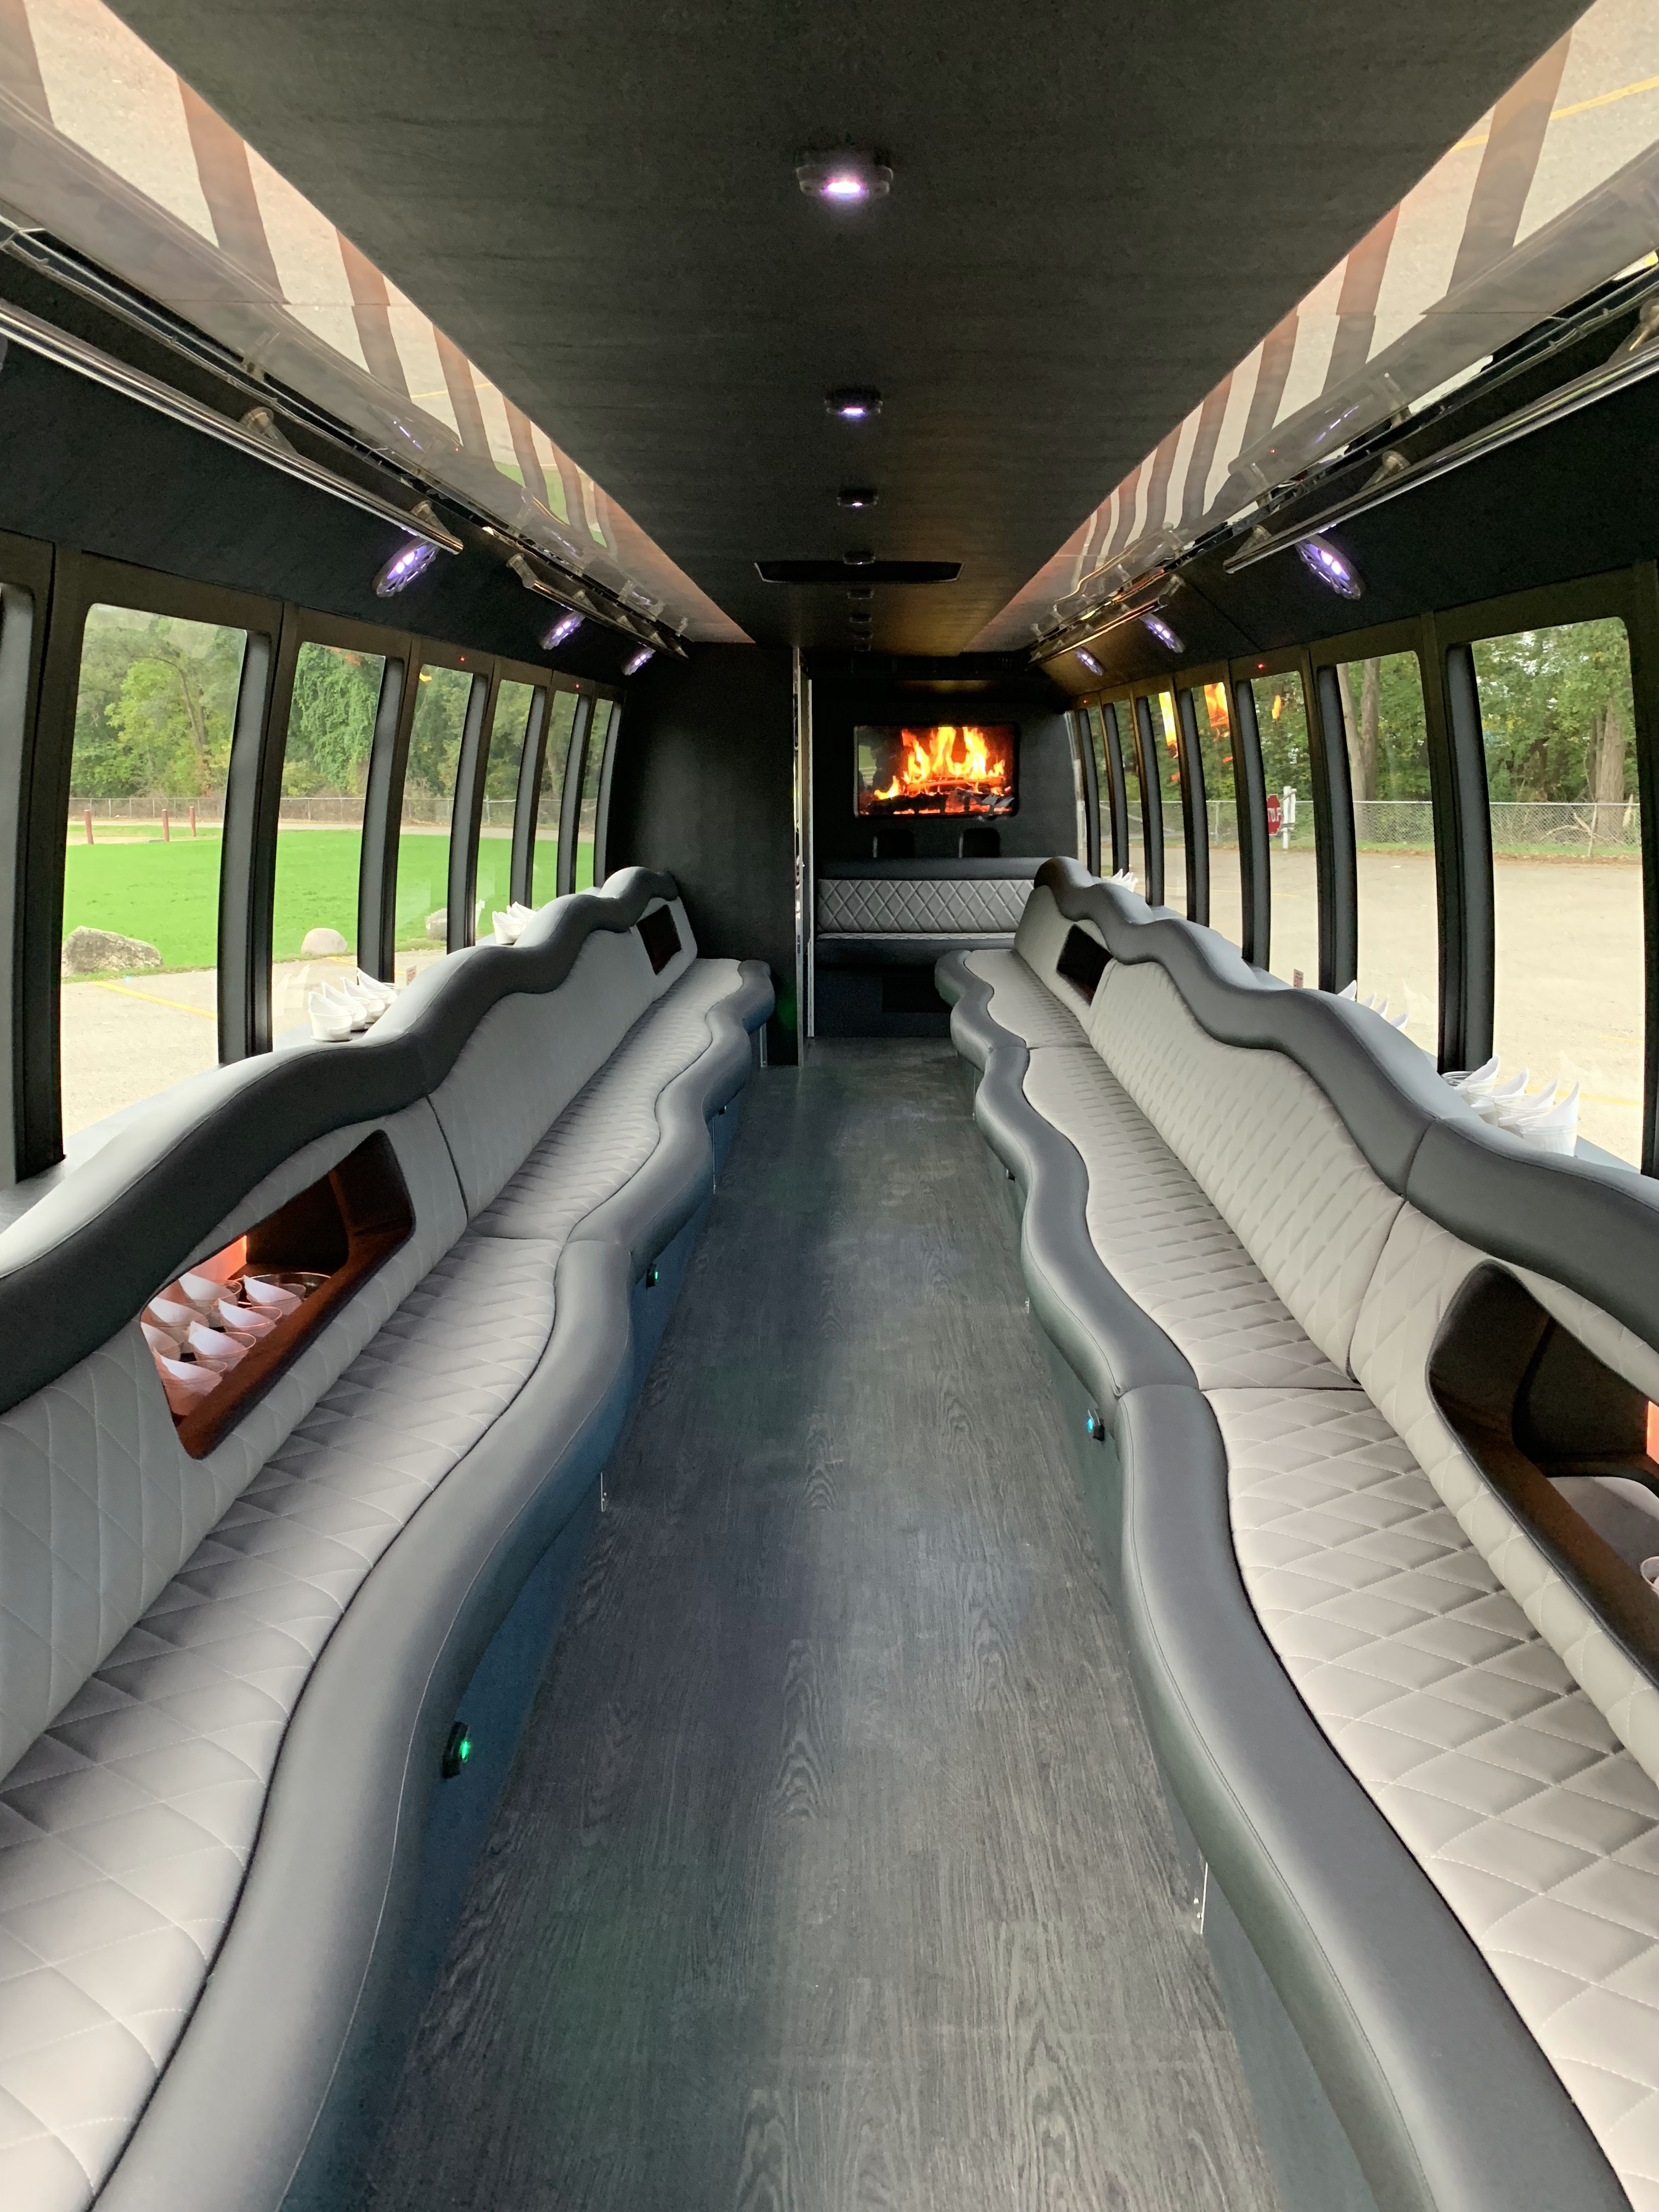 45 Passenger Luxury Limo Coach Full Interior